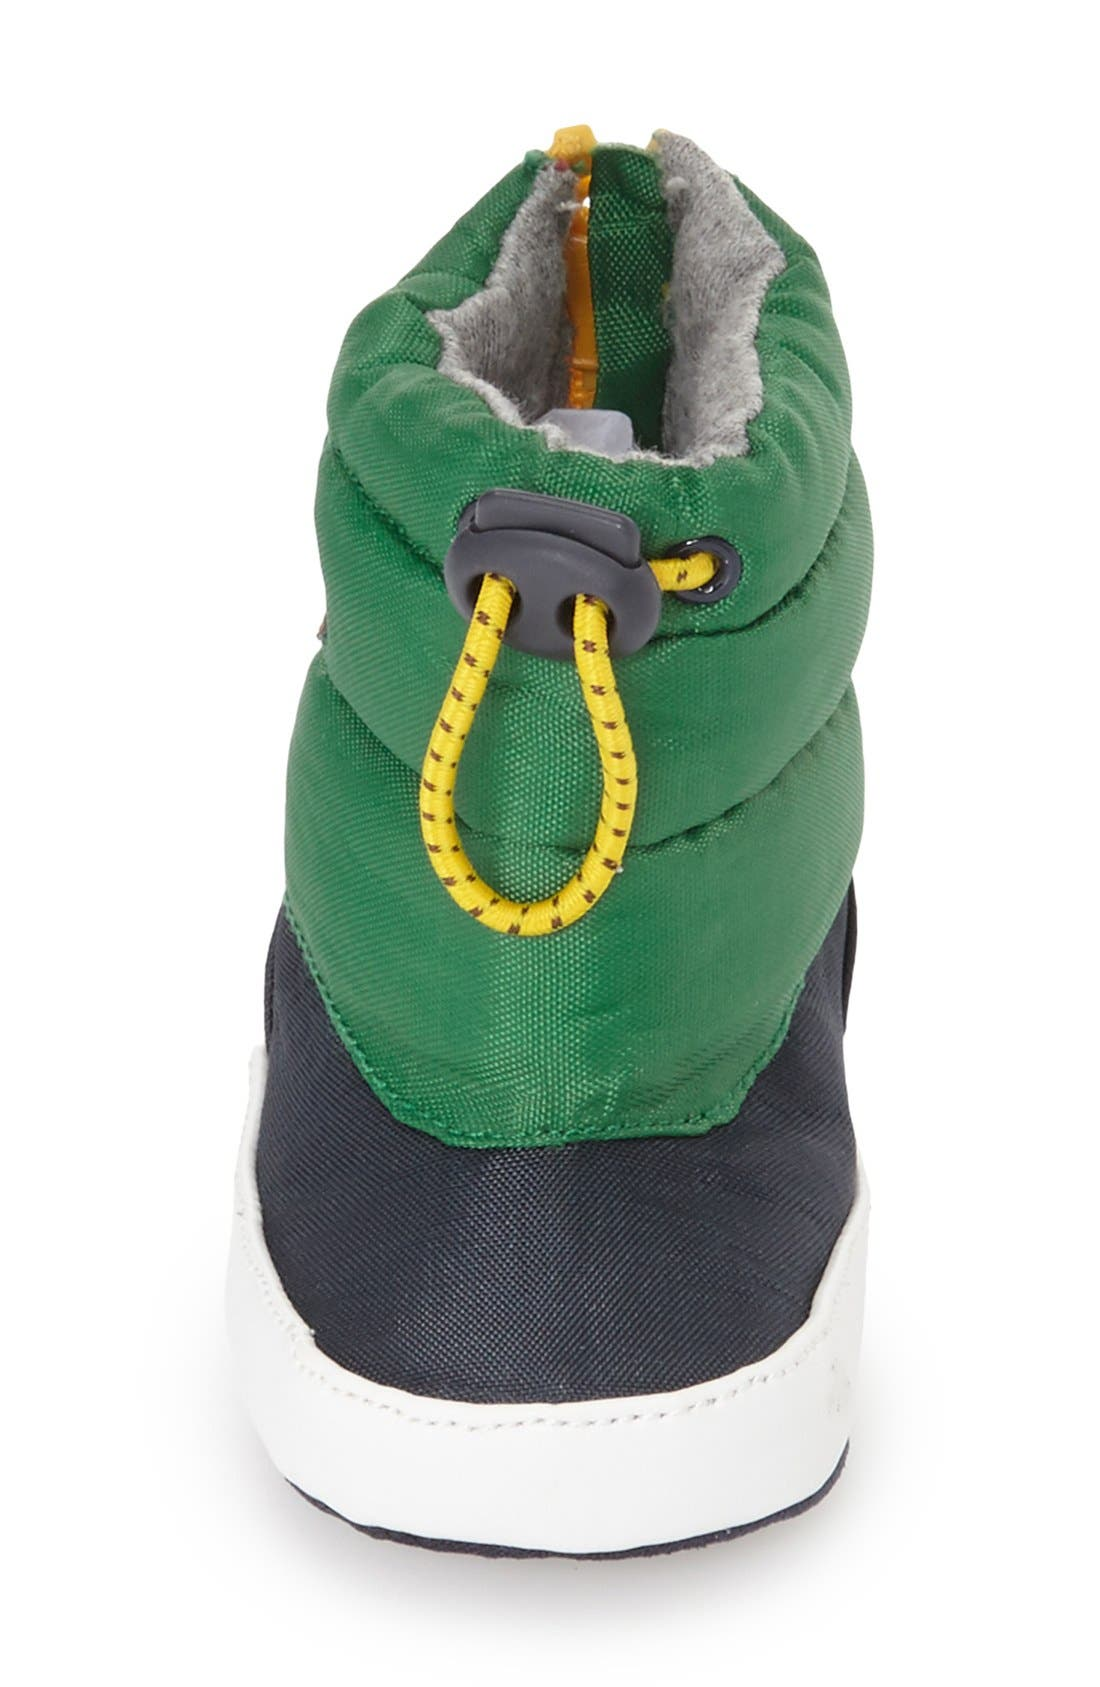 TOMMY HILFIGER,                             'LilMadison' Boot,                             Alternate thumbnail 3, color,                             303